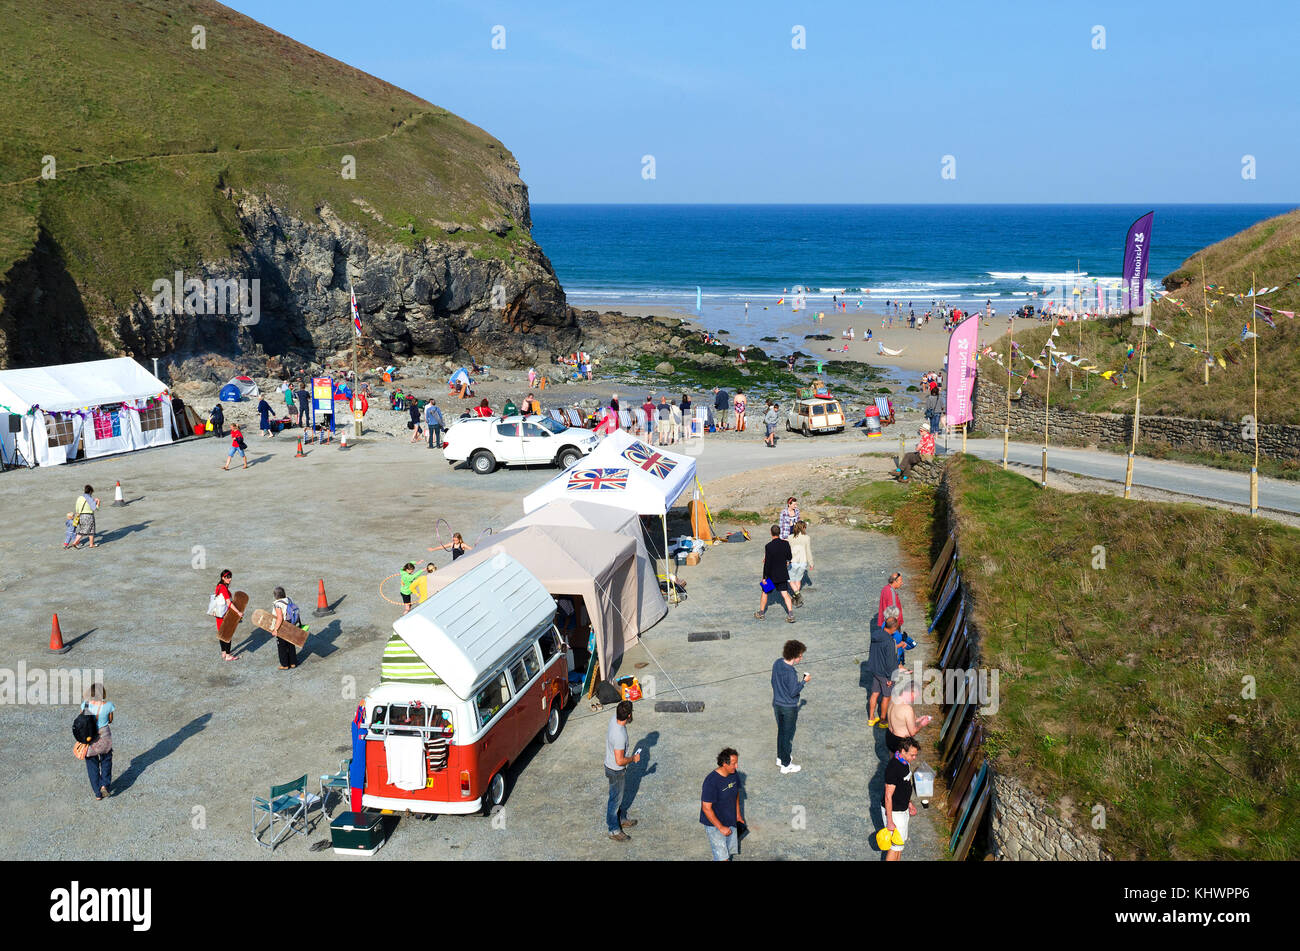 the beach and car park at chapel porth neat st.agnes in cornwall, england, uk. Stock Photo